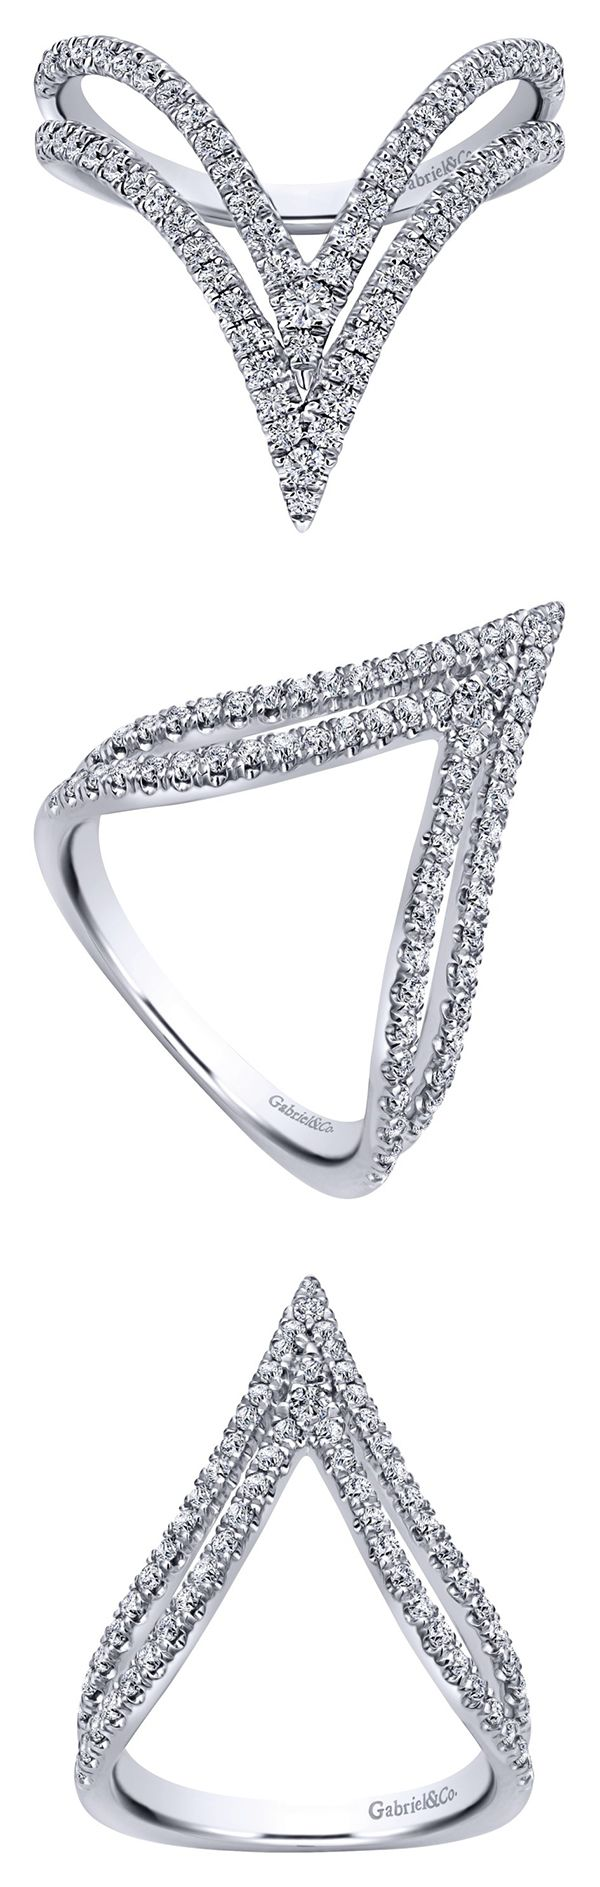 A beautiful 14k White Gold Diamond Ring from Gabriel & Co. We absolutely love the daring design on this ring with all the gorgeous diamonds it has all over! The sharpness of this ring is so intriguing and unique.